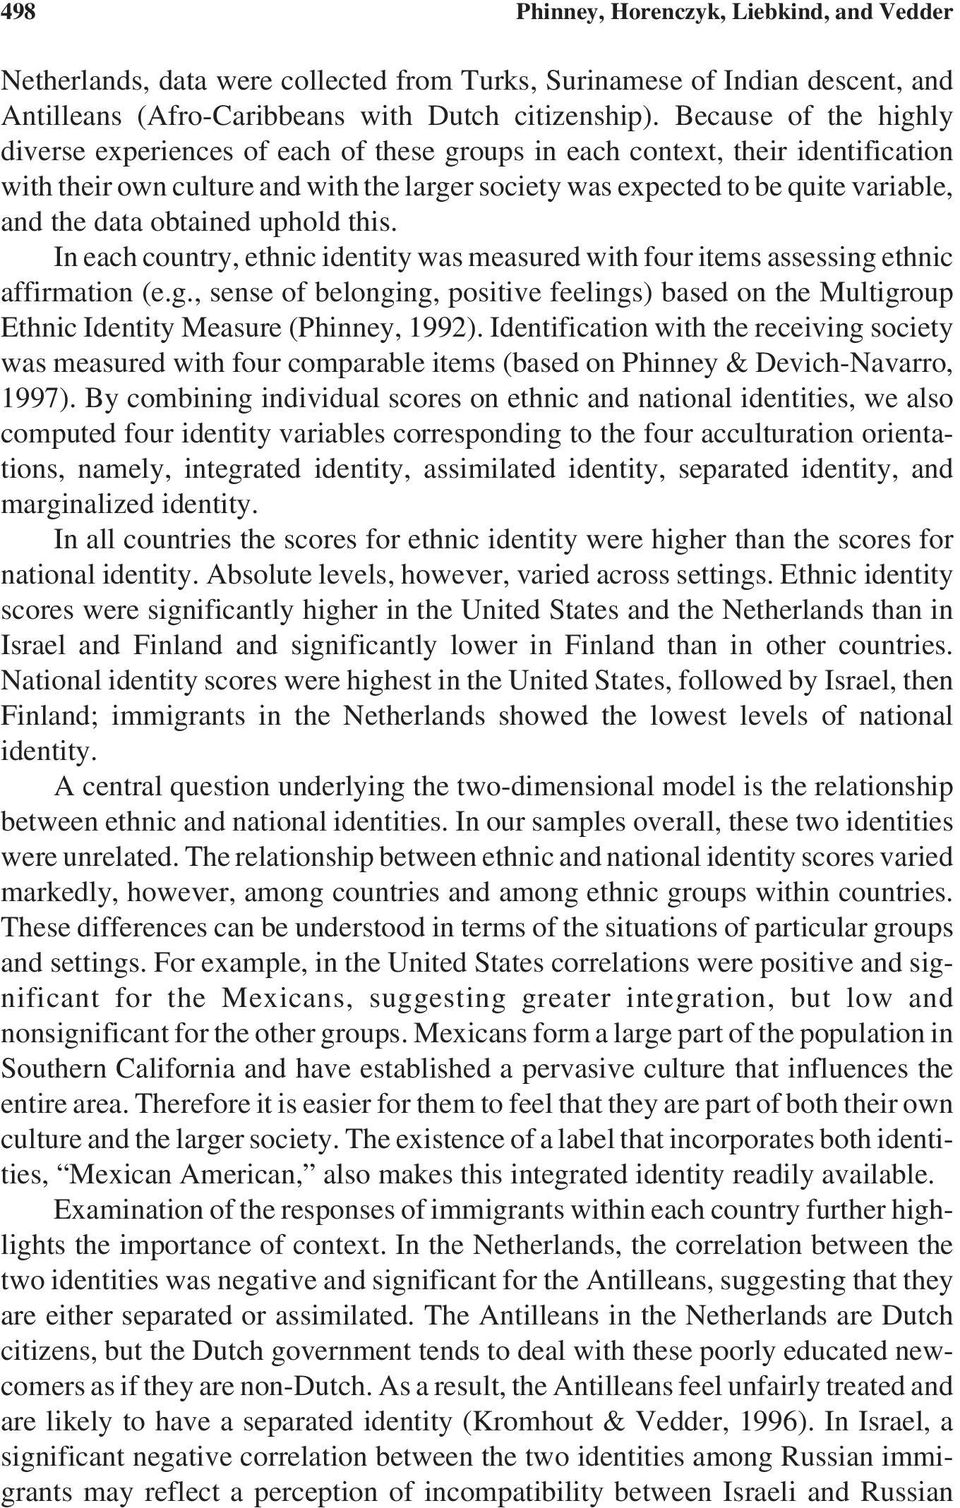 data obtained uphold this. In each country, ethnic identity was measured with four items assessing